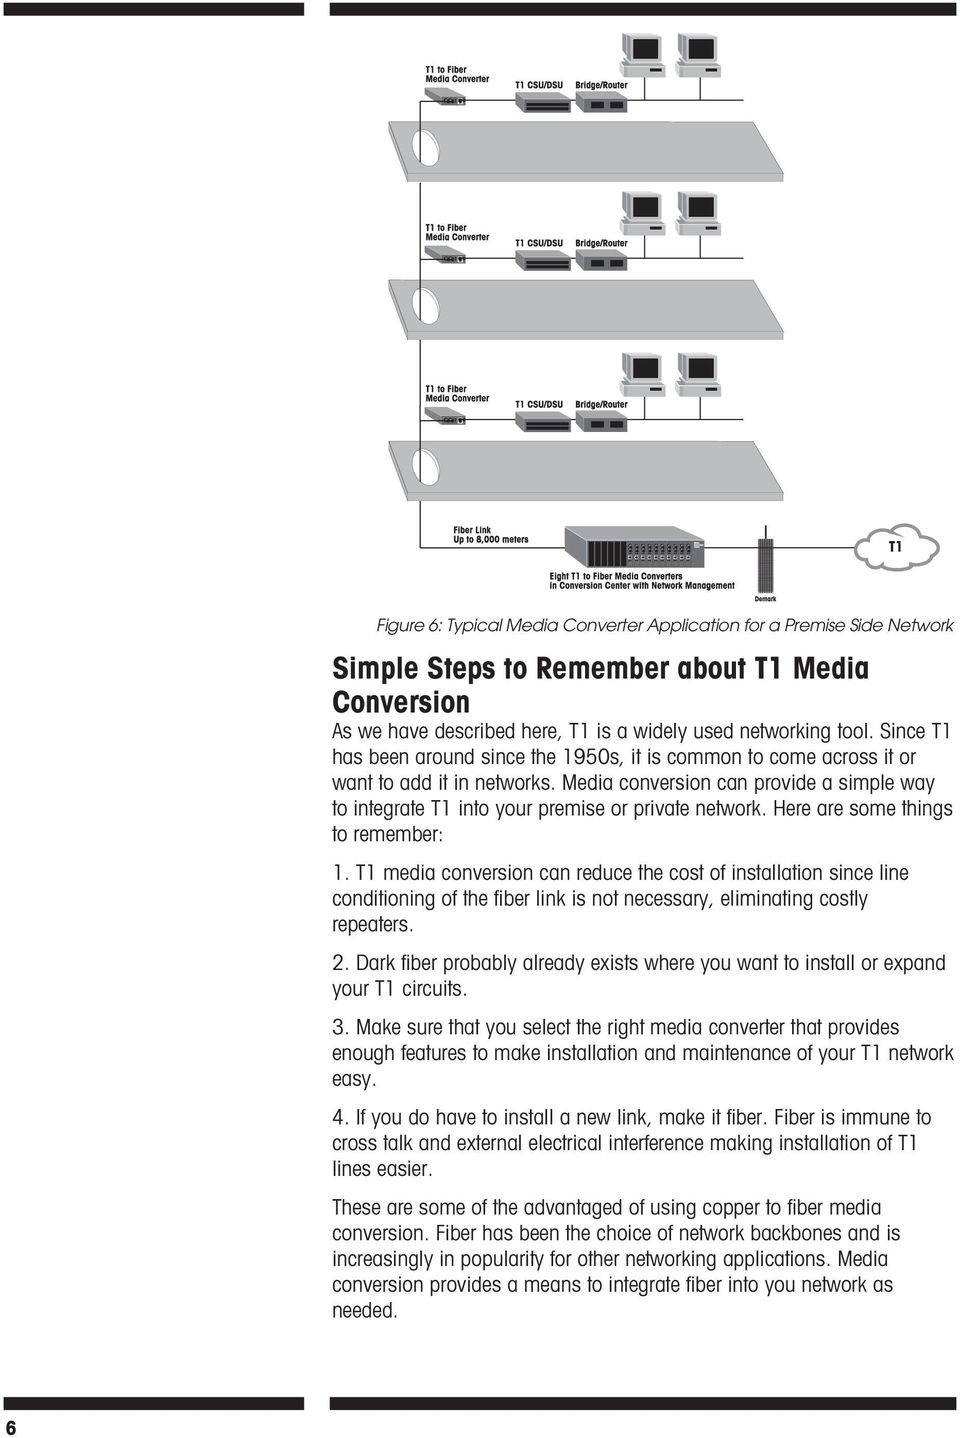 Here are some things to remember: 1. T1 media conversion can reduce the cost of installation since line conditioning of the fiber link is not necessary, eliminating costly repeaters. 2.